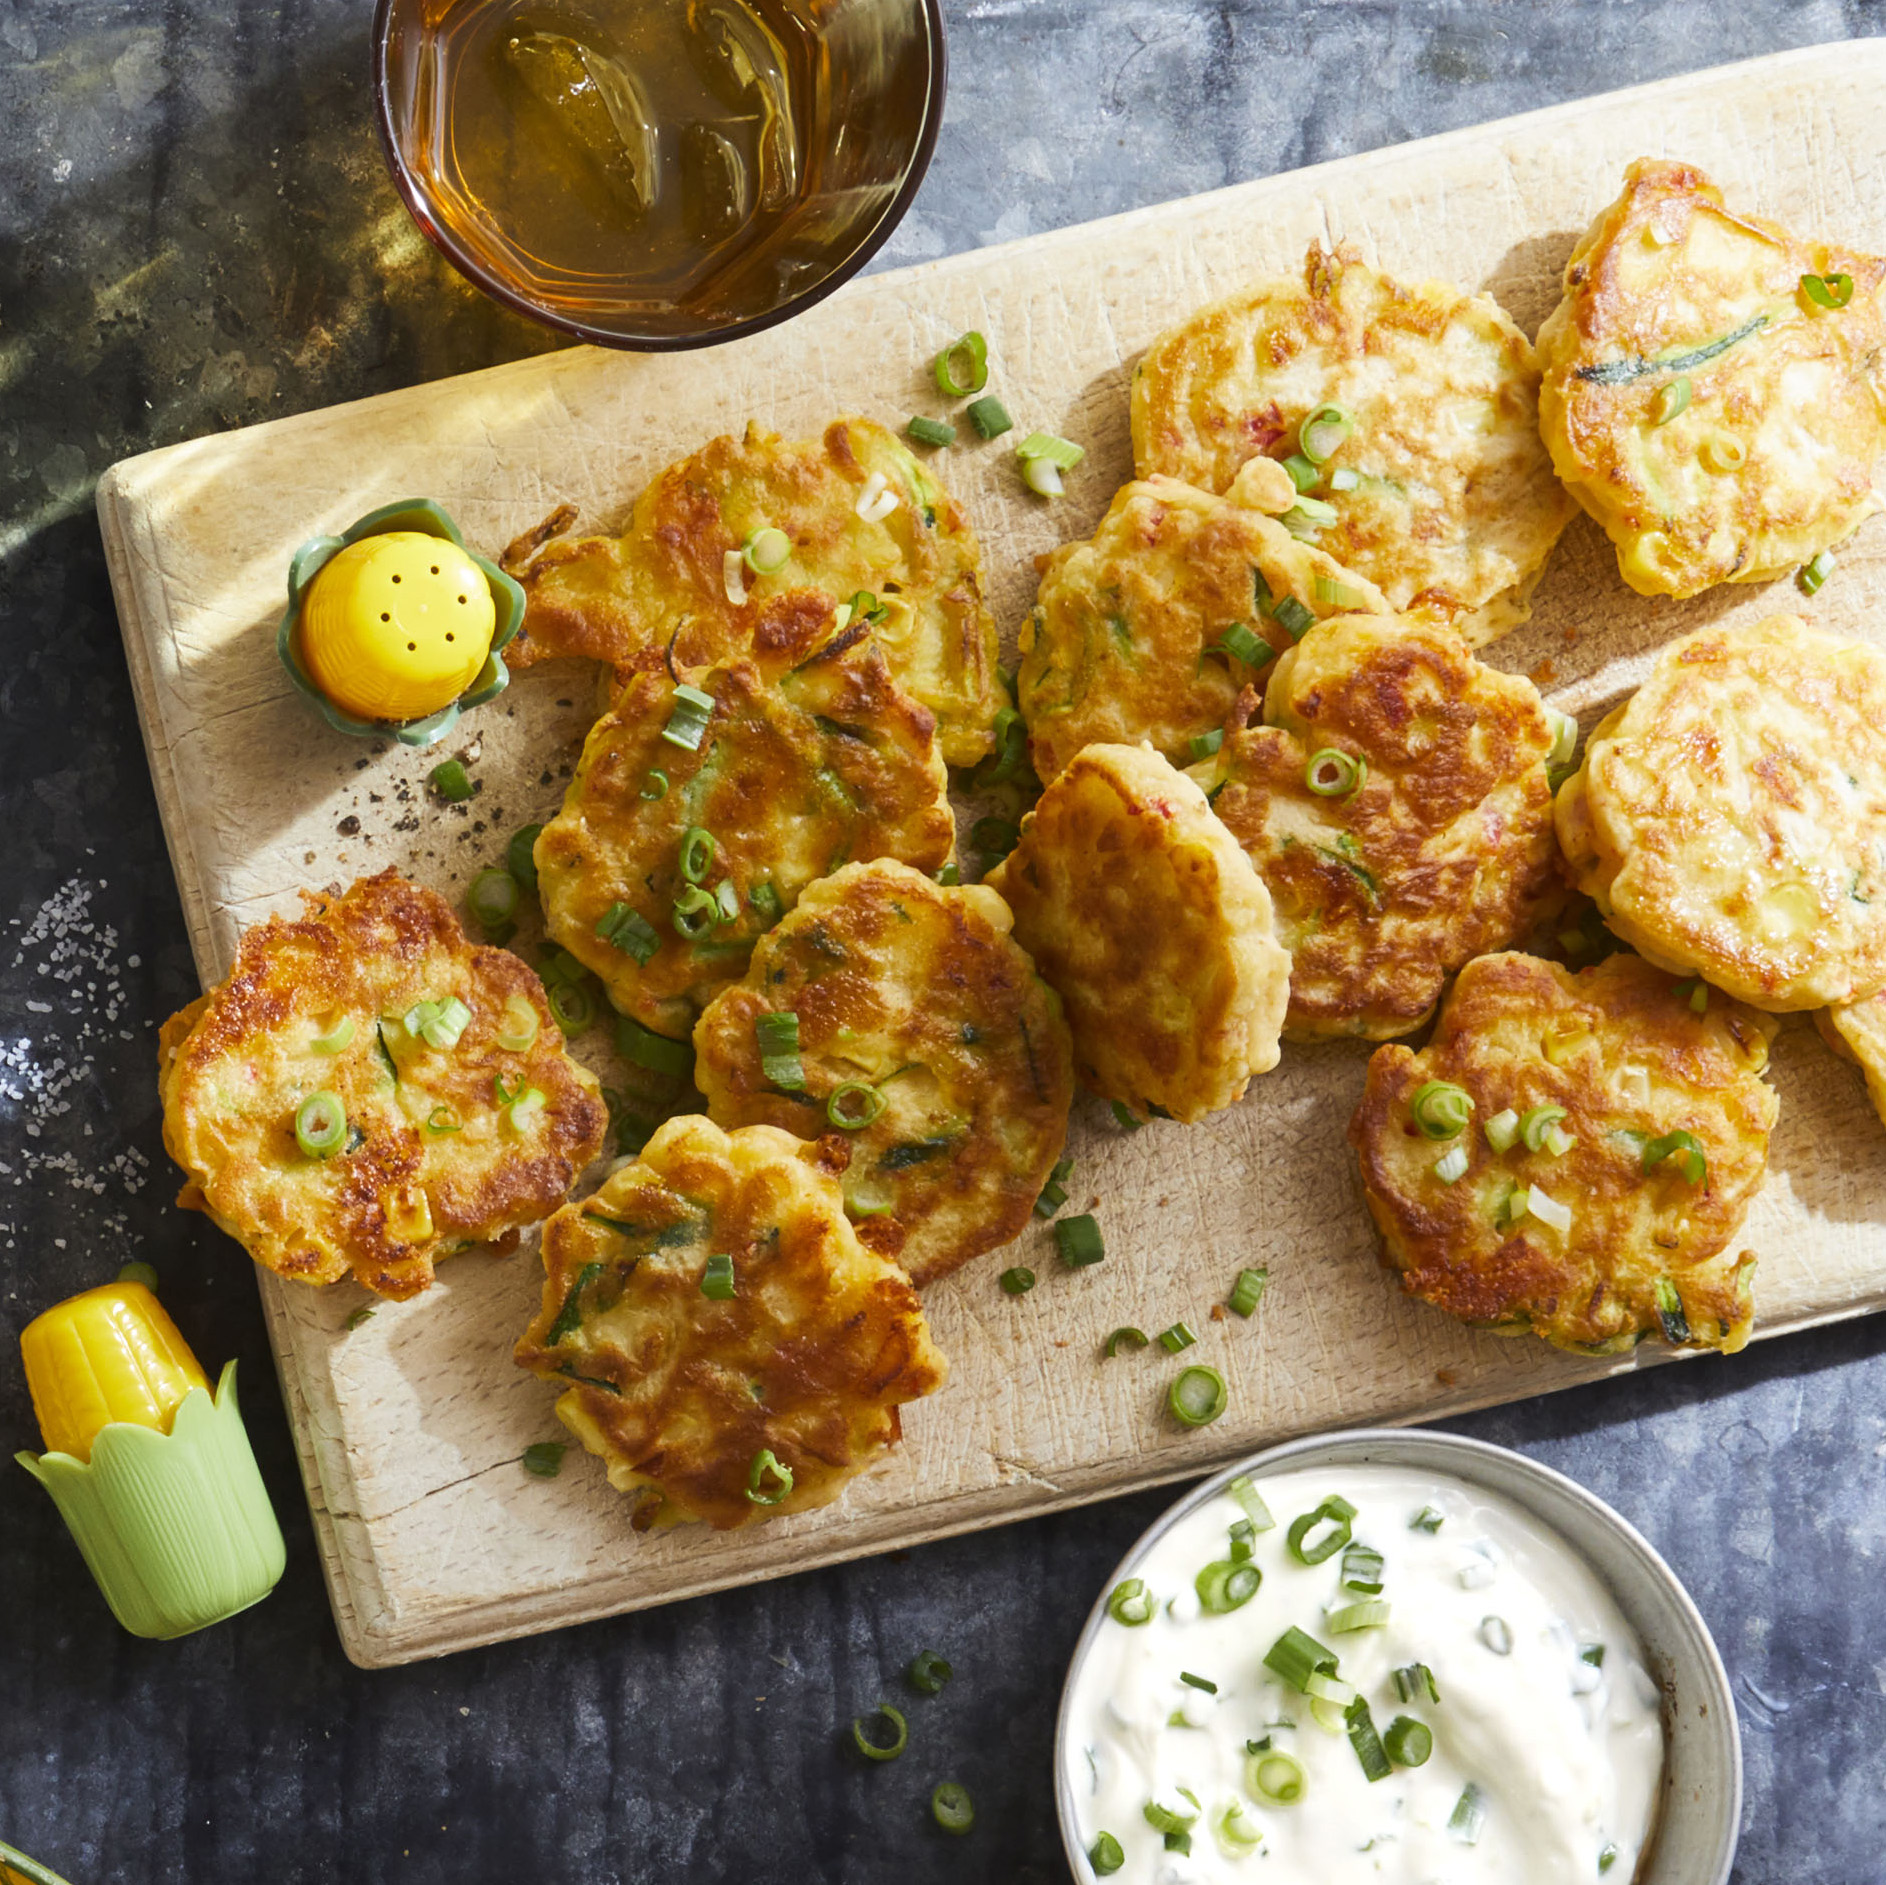 Zucchini Corn Fritters - Printer Friendly